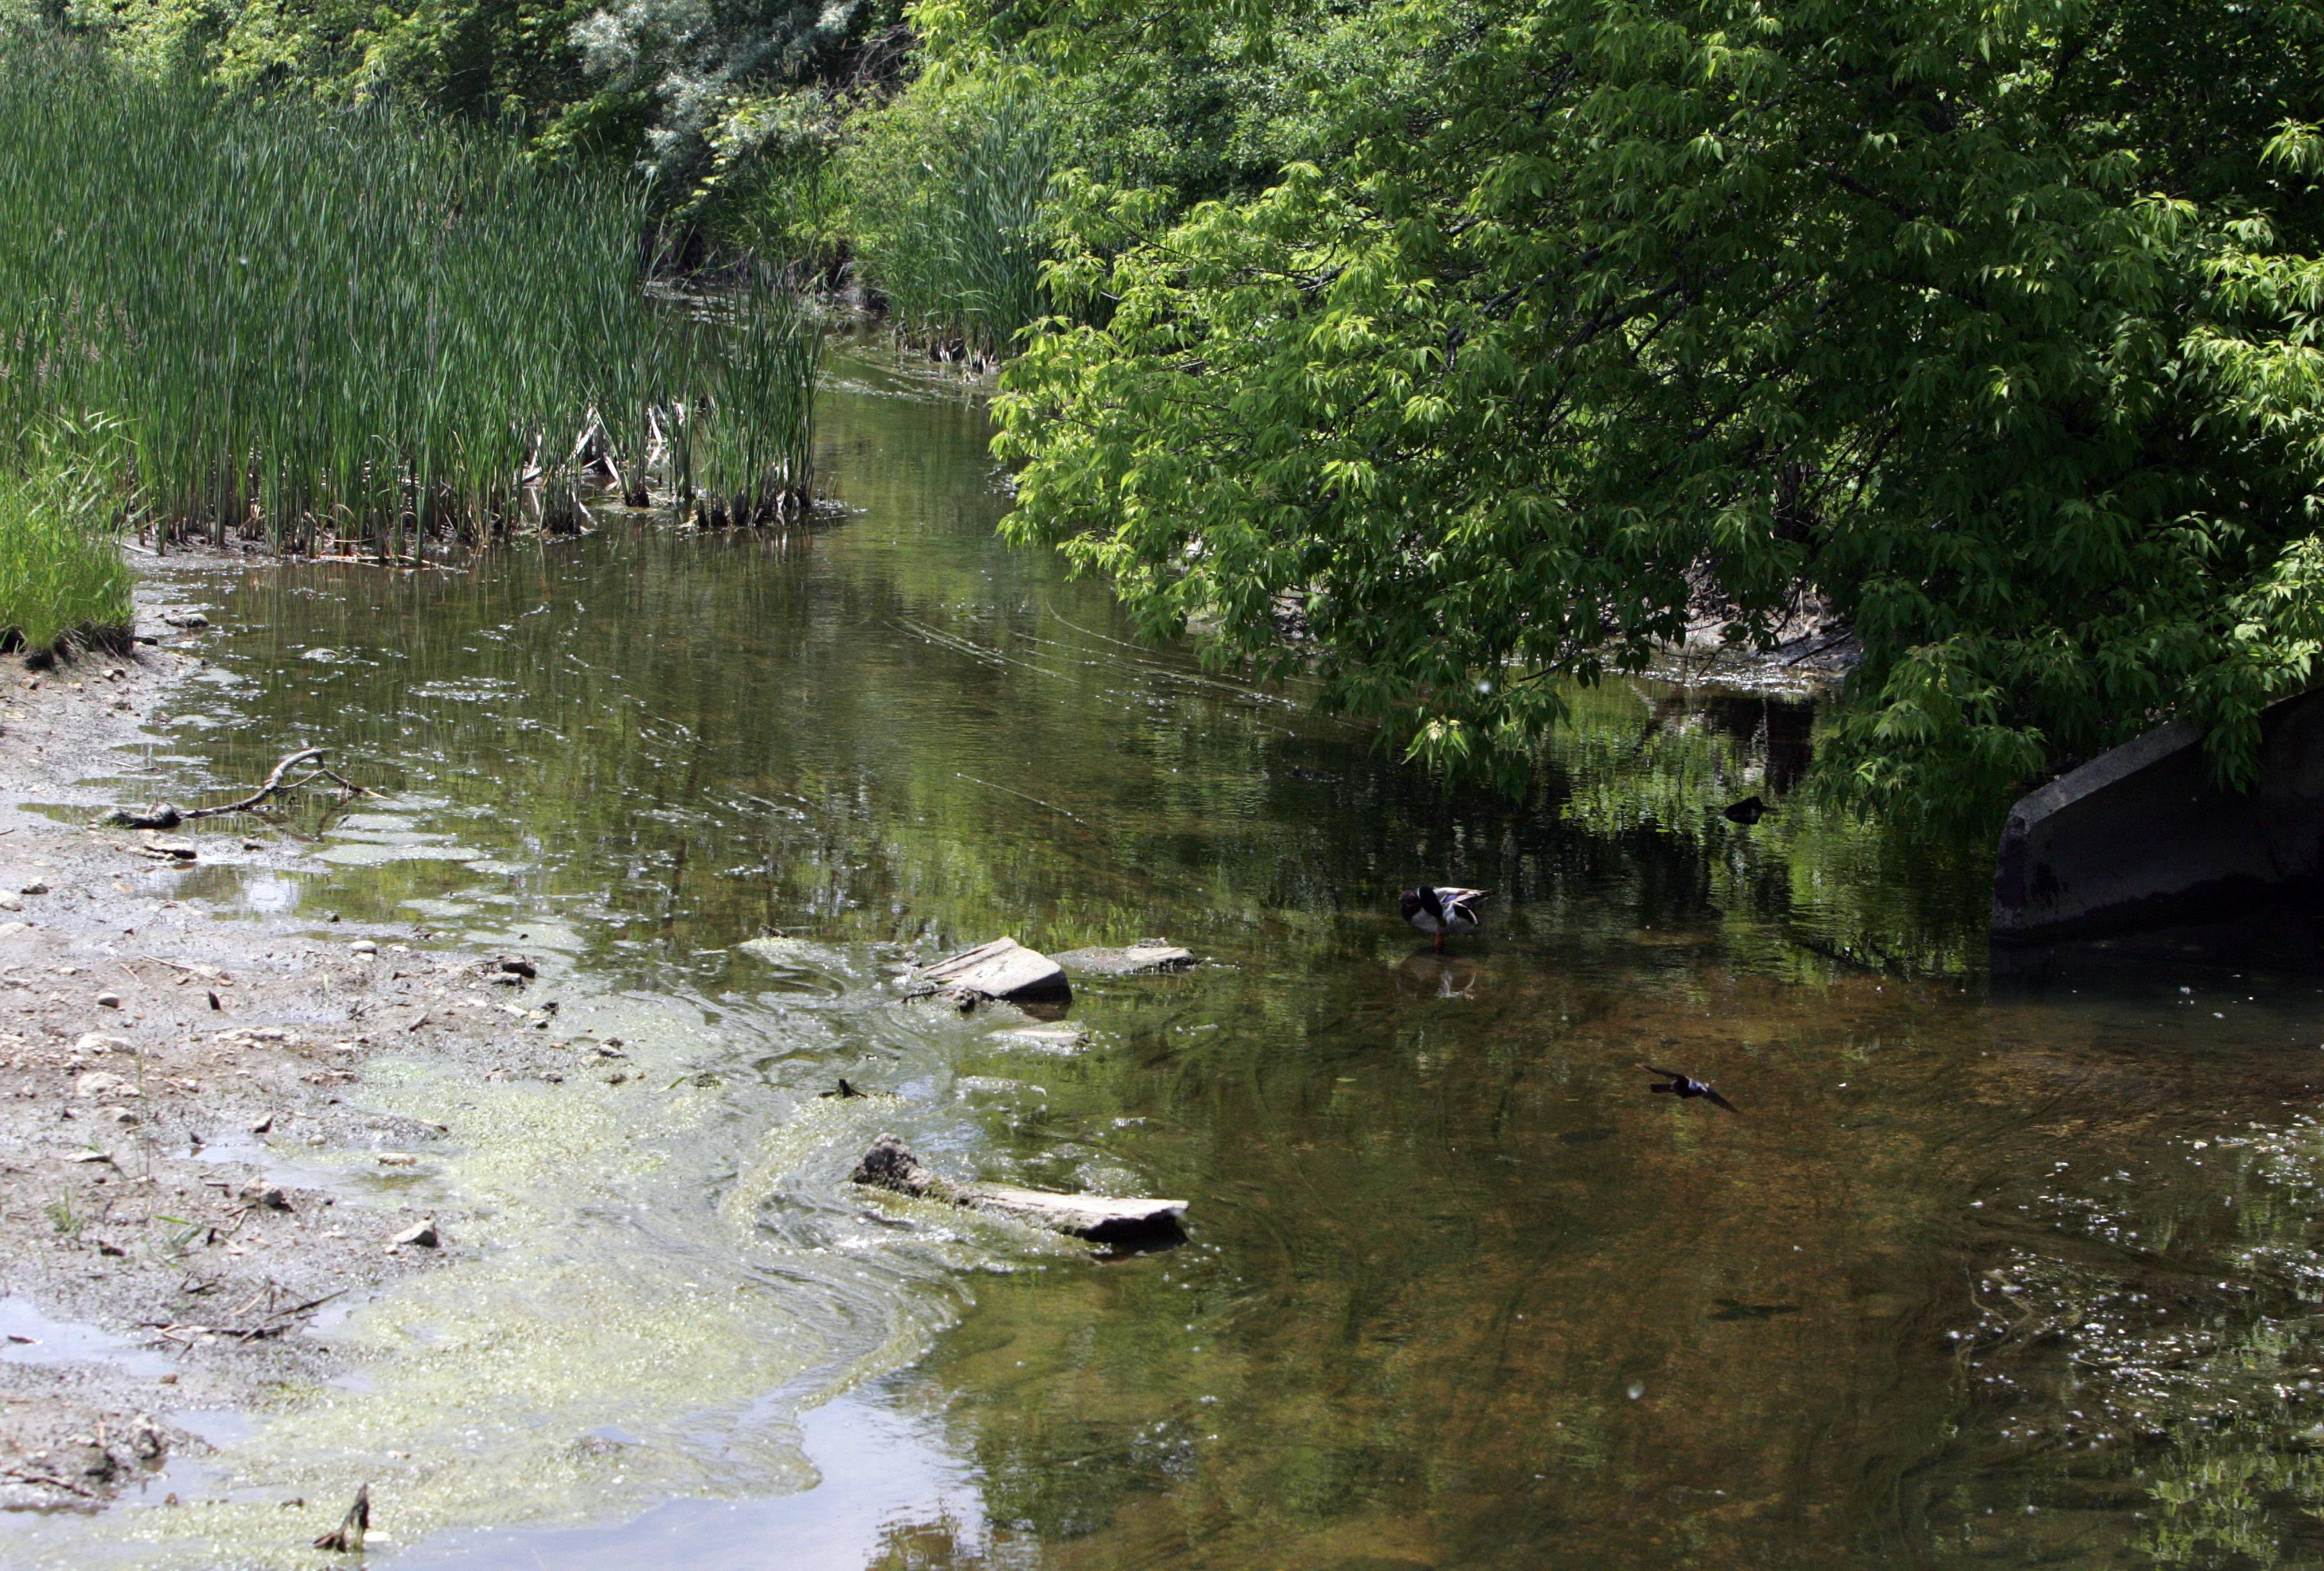 Work aimed at improving the water quality of Buffalo Creek will be among the major projects taken on this year by the Buffalo Grove Environmental Action Team, according to a presentation to village leaders this week. The group also plans to conduct a third annual Green Fair in June.